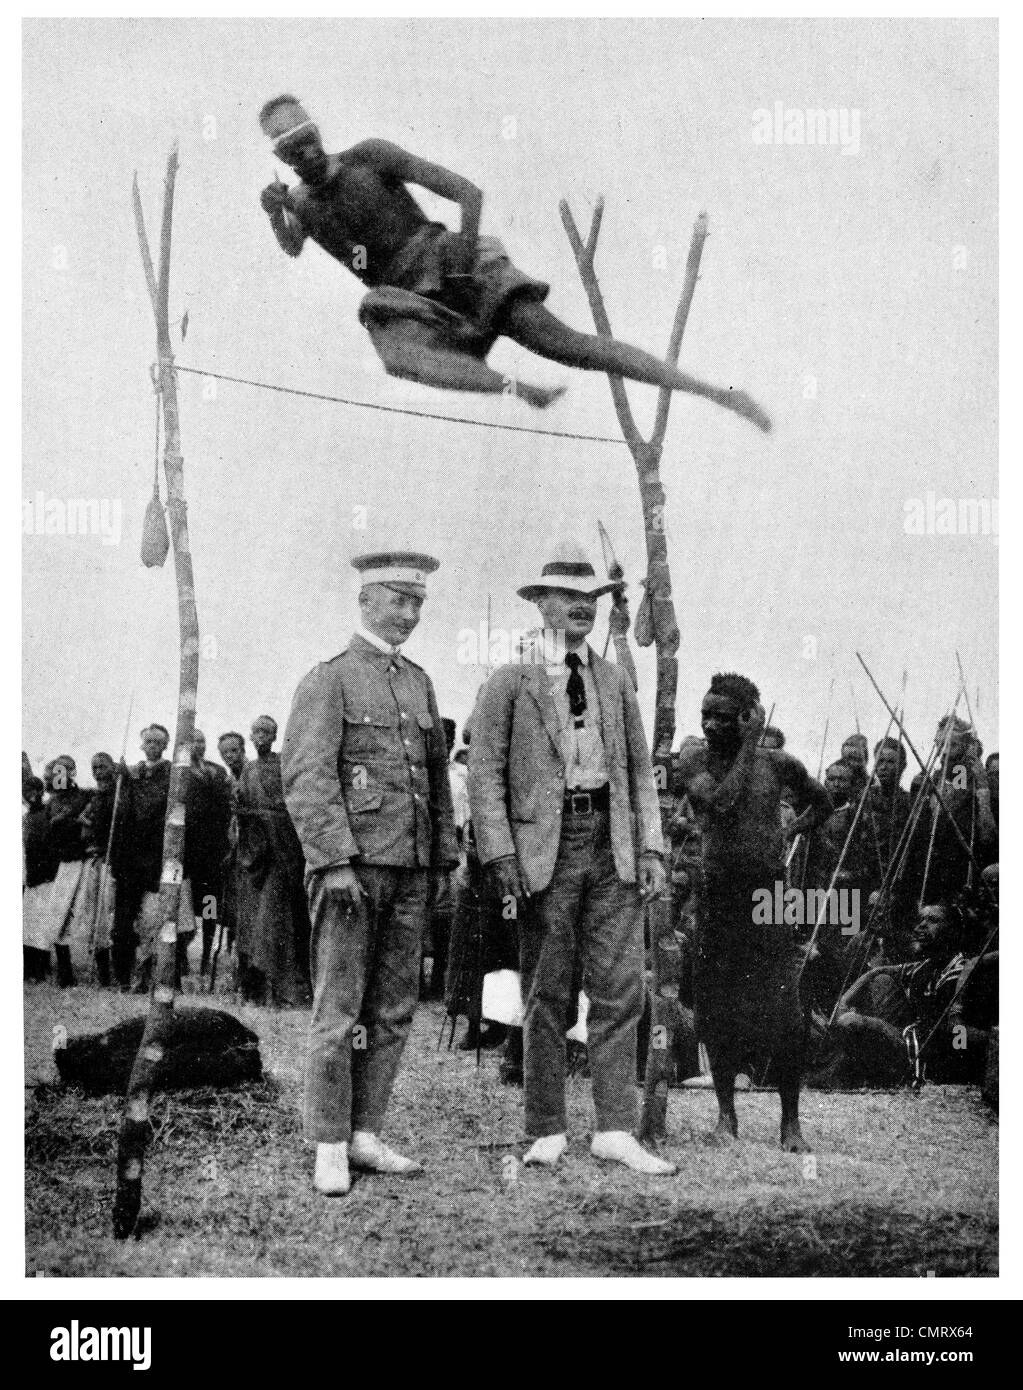 worksheet 8 Ft In Inches 1919 east african high jump 8 ft 5 inches stock photo royalty inches